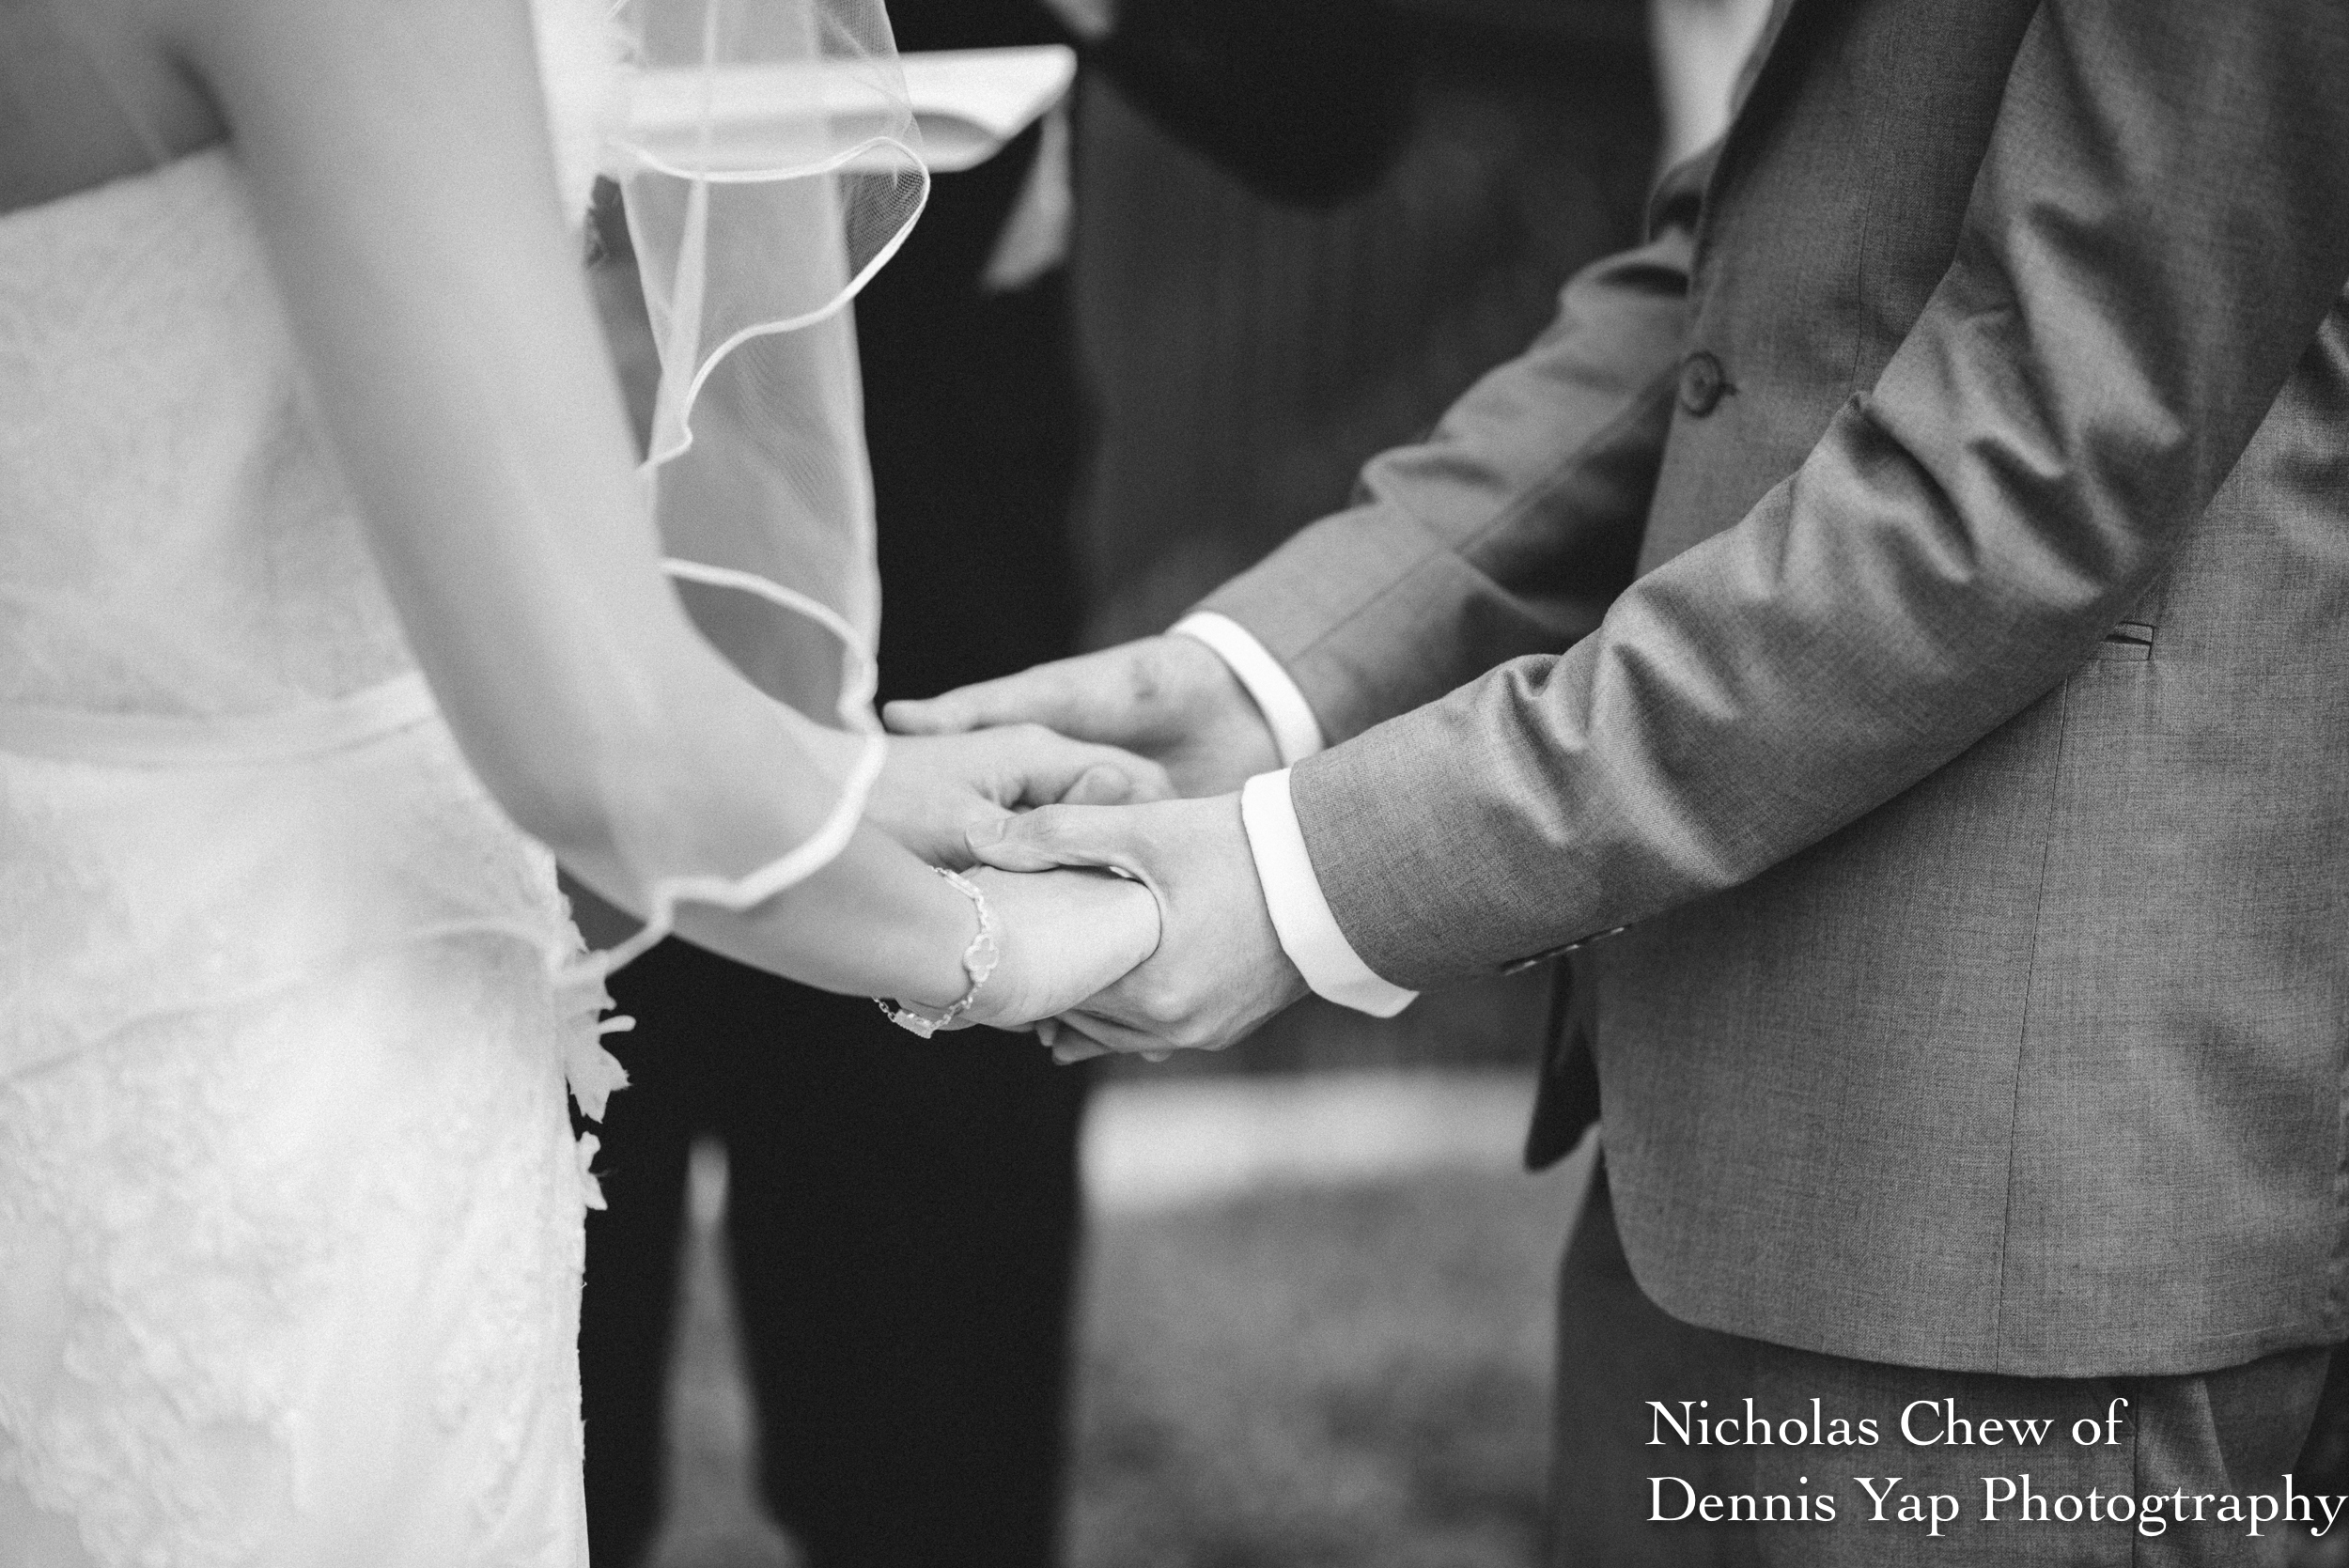 Nicholas Chew profile wedding natural candid moments chinese traditional church garden of dennis yap photography012Nicholas Profile-13.jpg